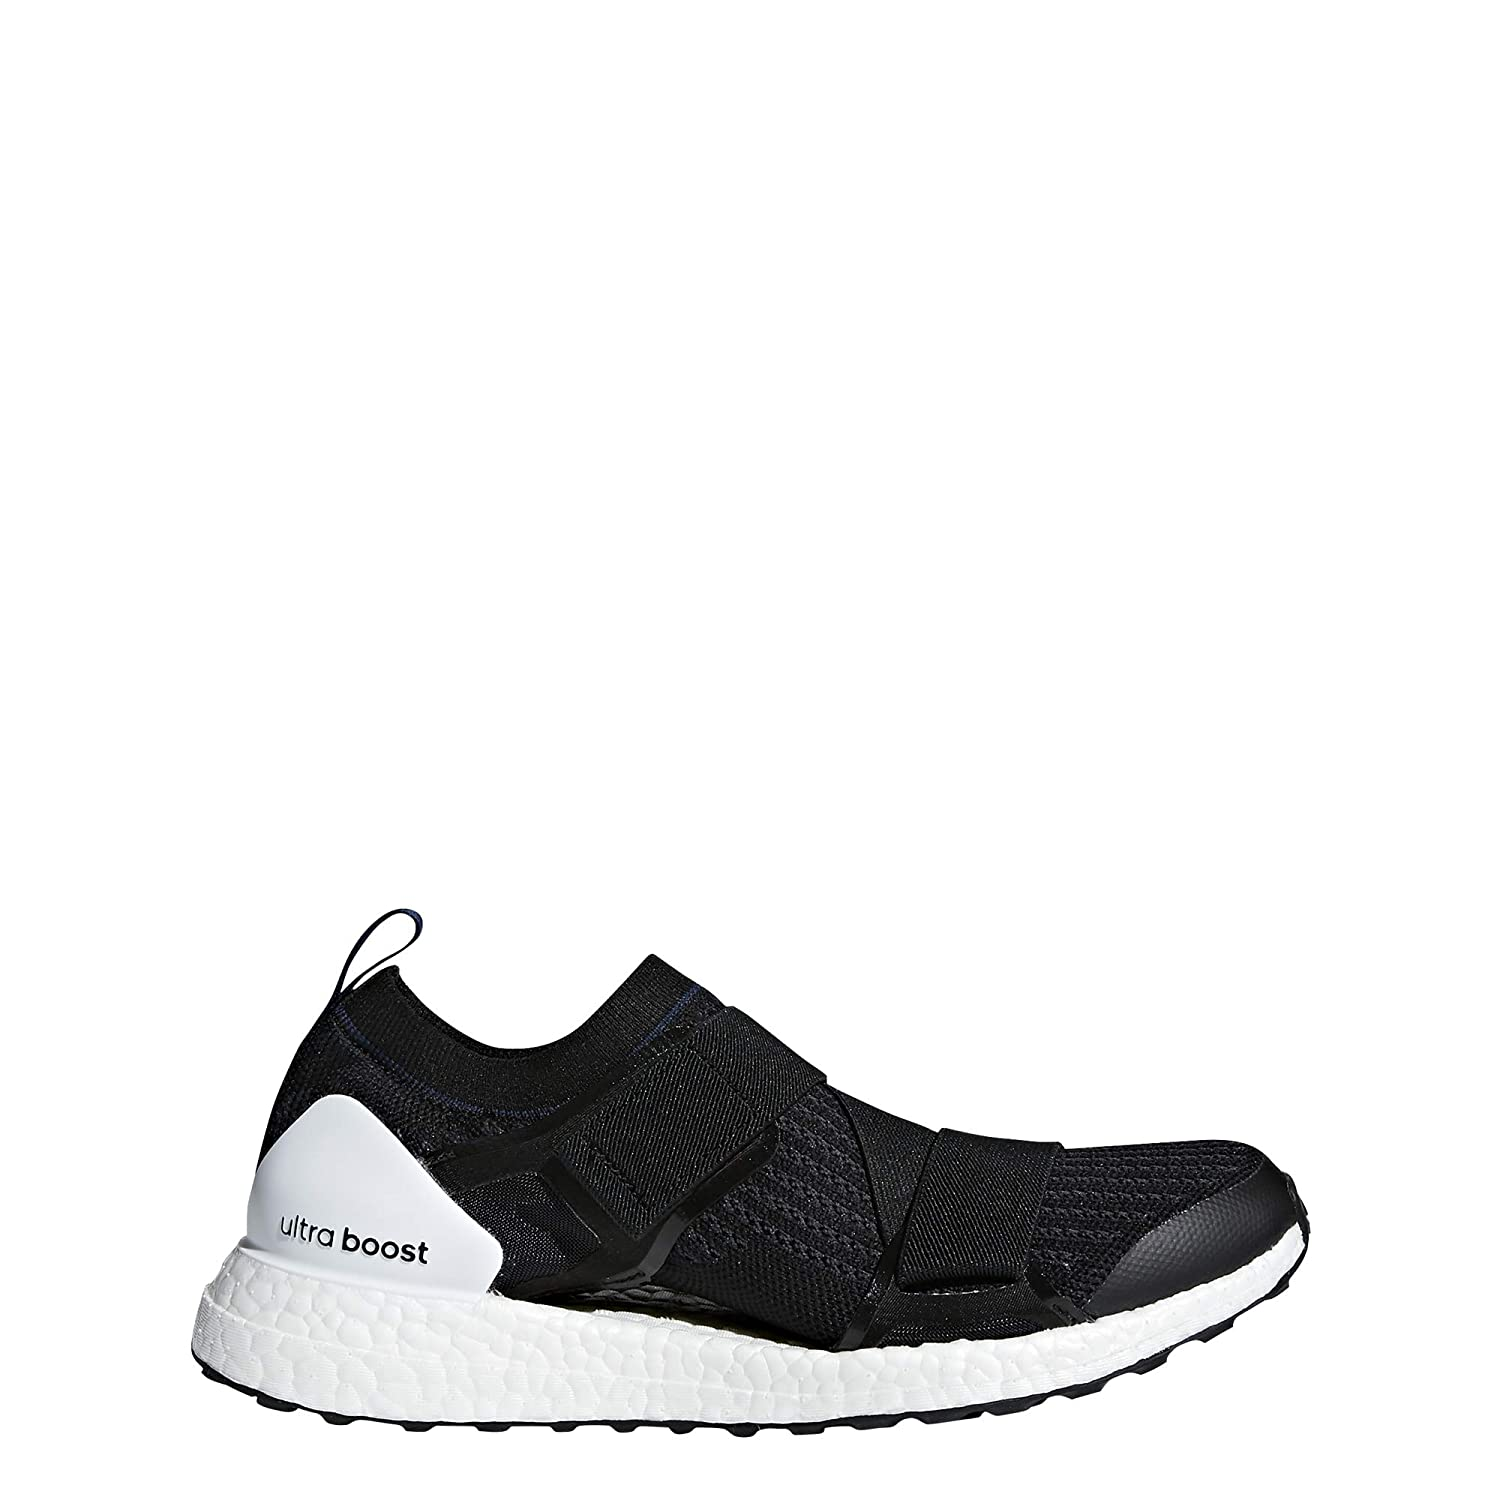 good selling running shoes attractive price Amazon.com: Stella Mccartney Ultraboost X Womens Sneakers ...